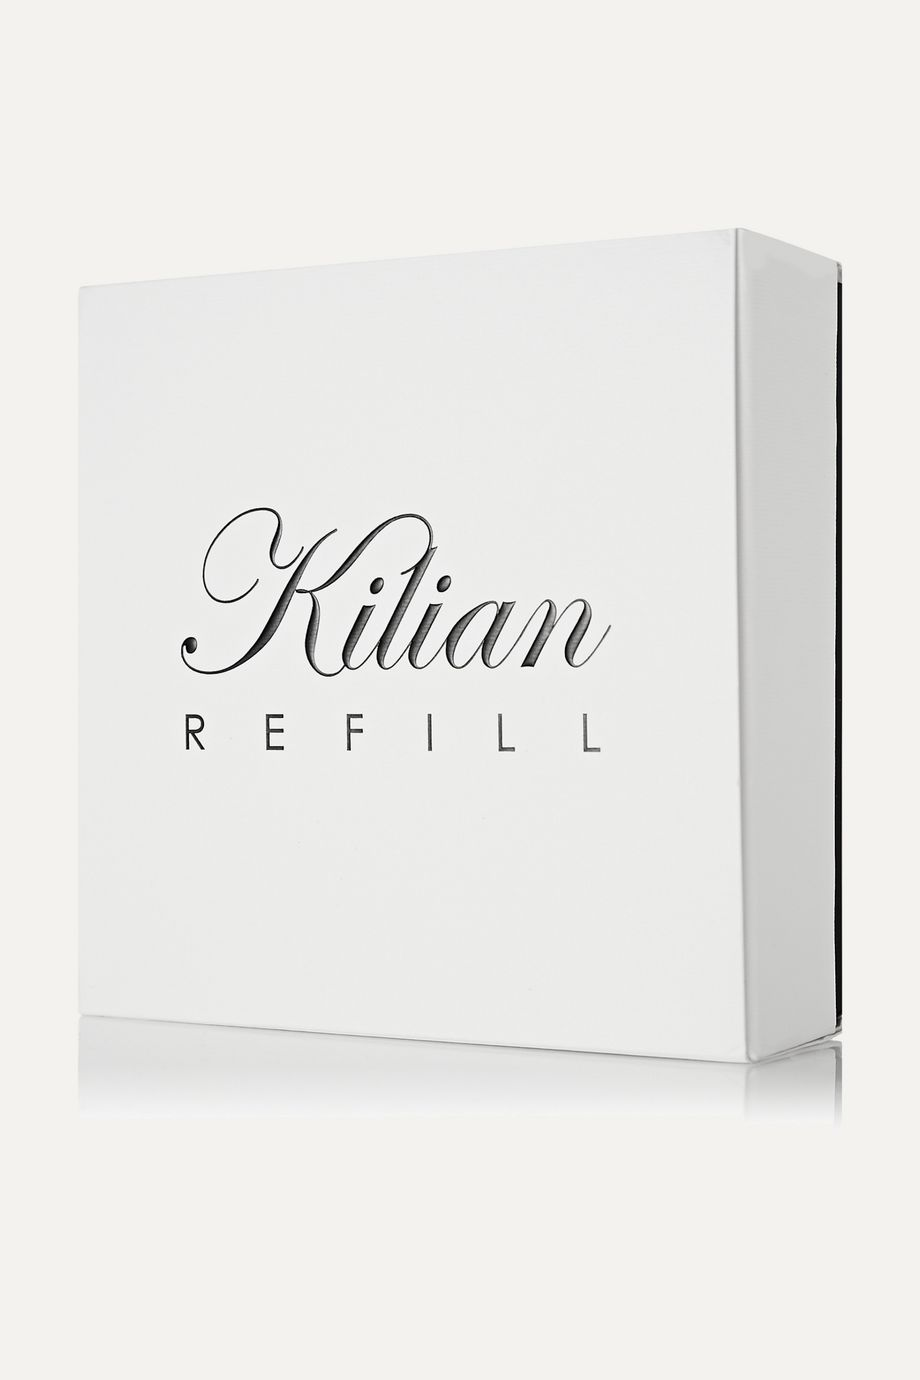 Kilian Back to Black, Aphrodisiac Eau de Parfum Refill - Honey, Cedarwood & Vanilla, 50ml